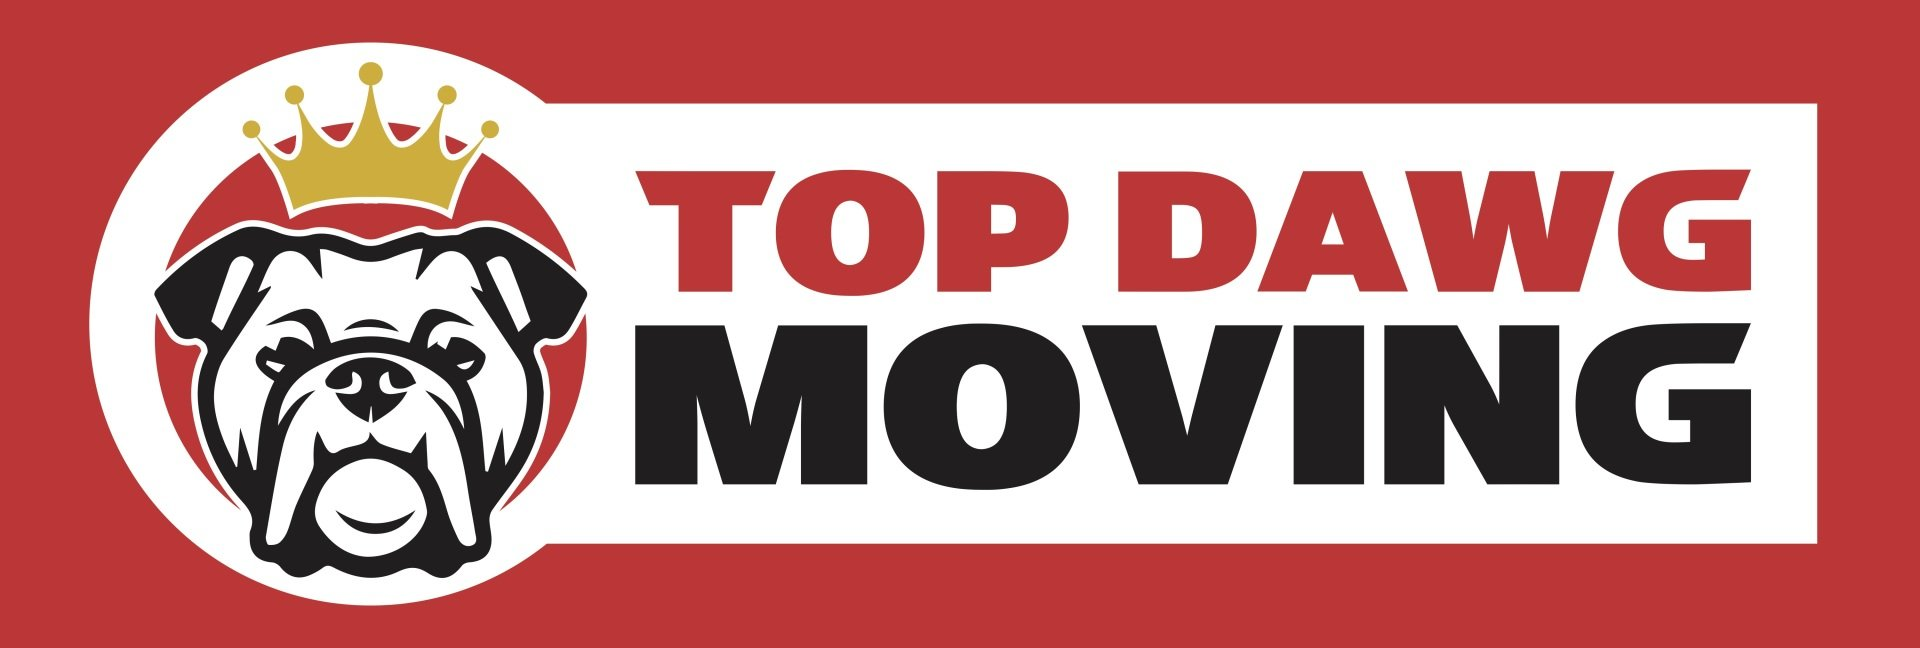 Top Dawg Moving Logo